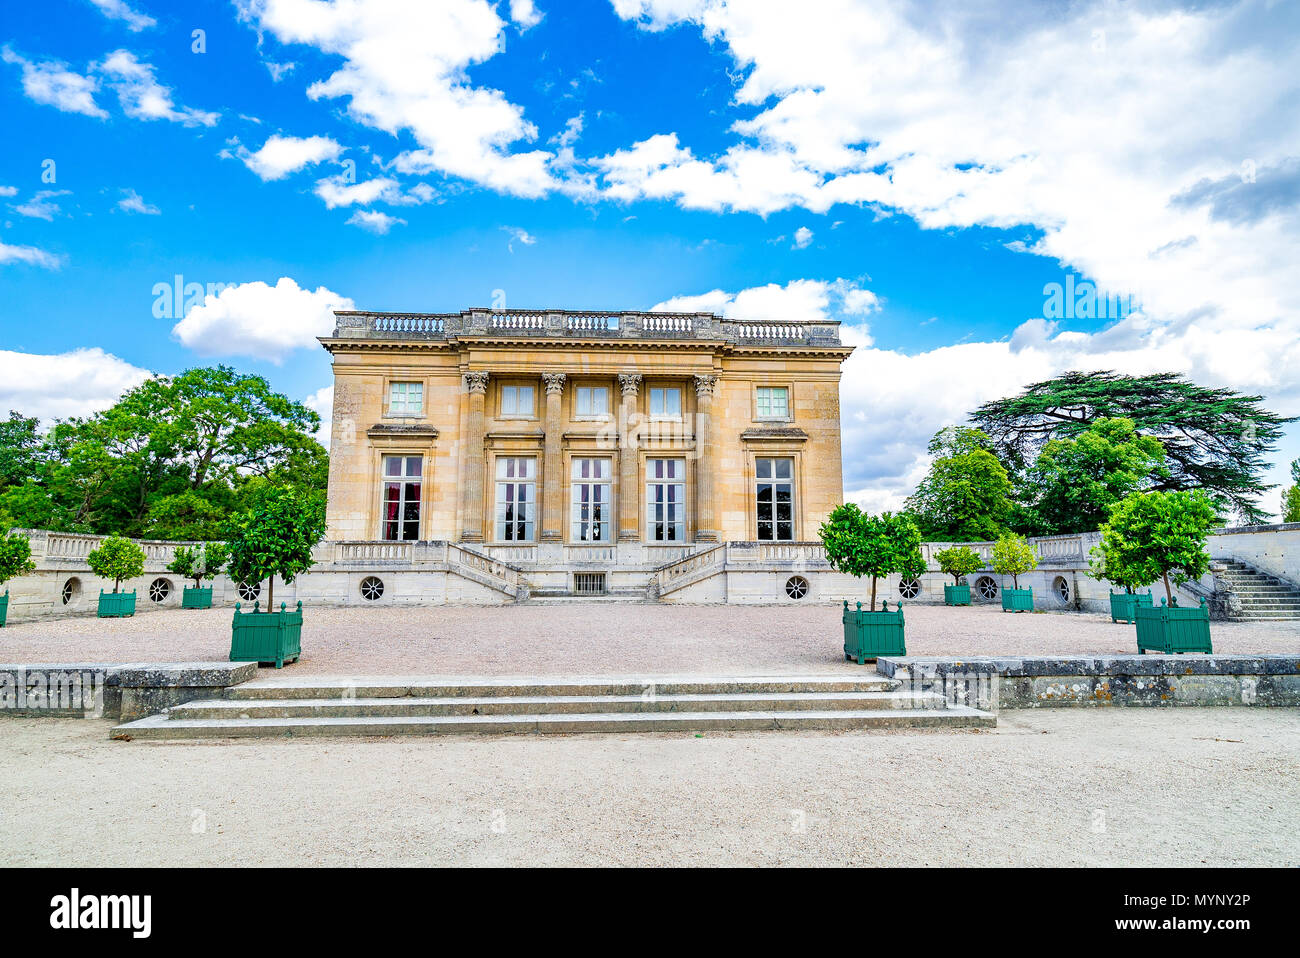 The West facade of the Petit Trianon, by Ange-Jacques Gabriel within the gardens of Versailles in France. - Stock Image